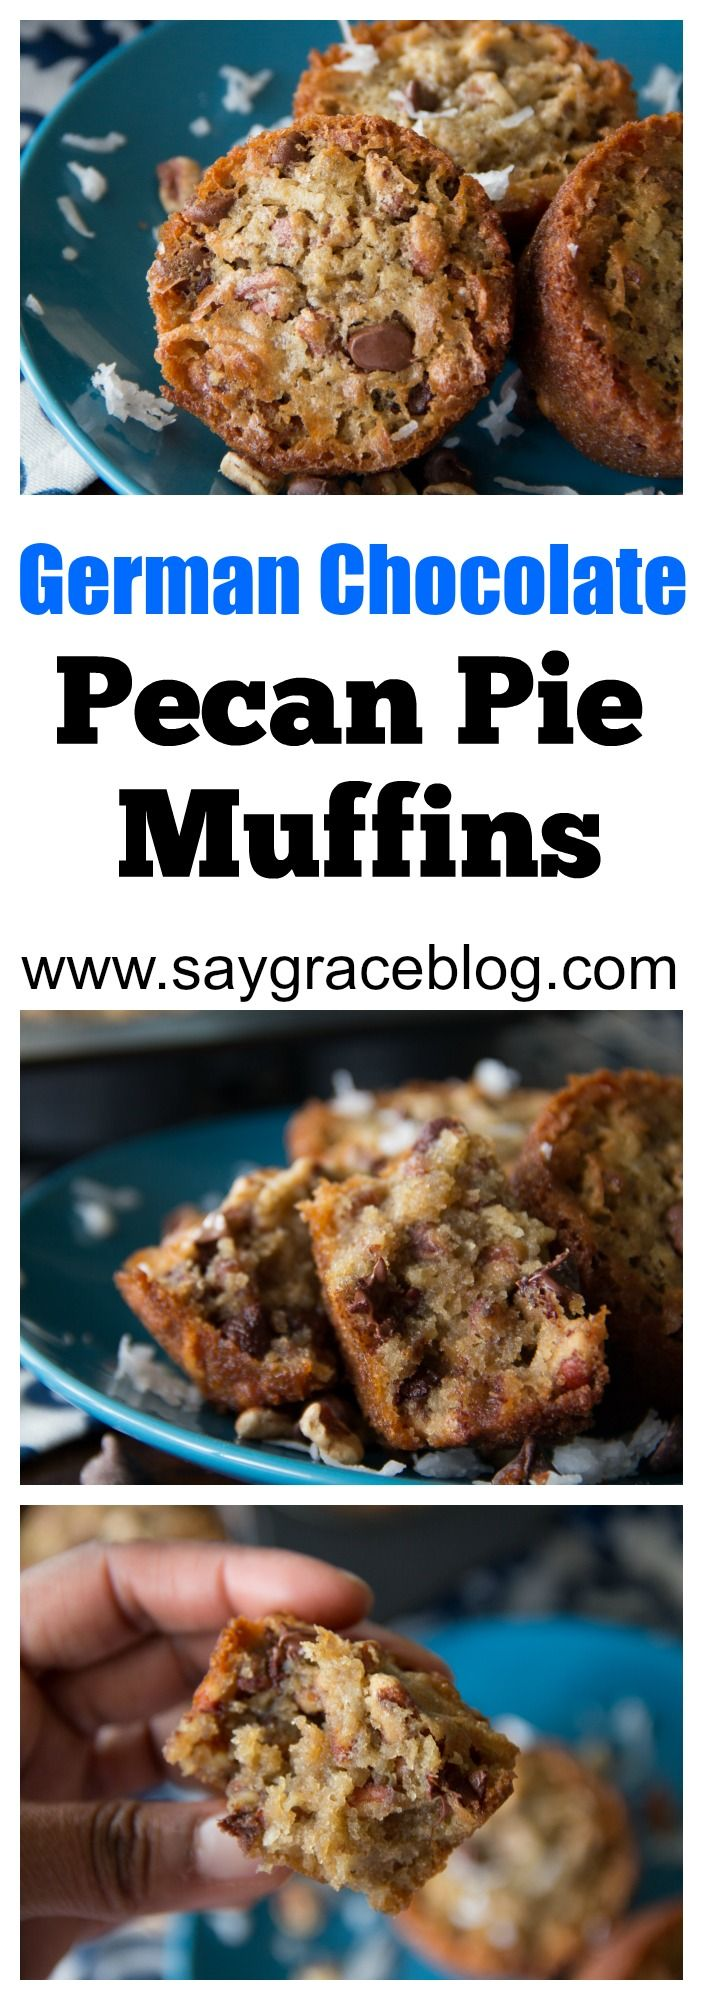 Pecan pie muffins go up a notch when combined with yummy semi-sweet chocolate chips and tasty sweetened coconut! (chocolate filling donuts)